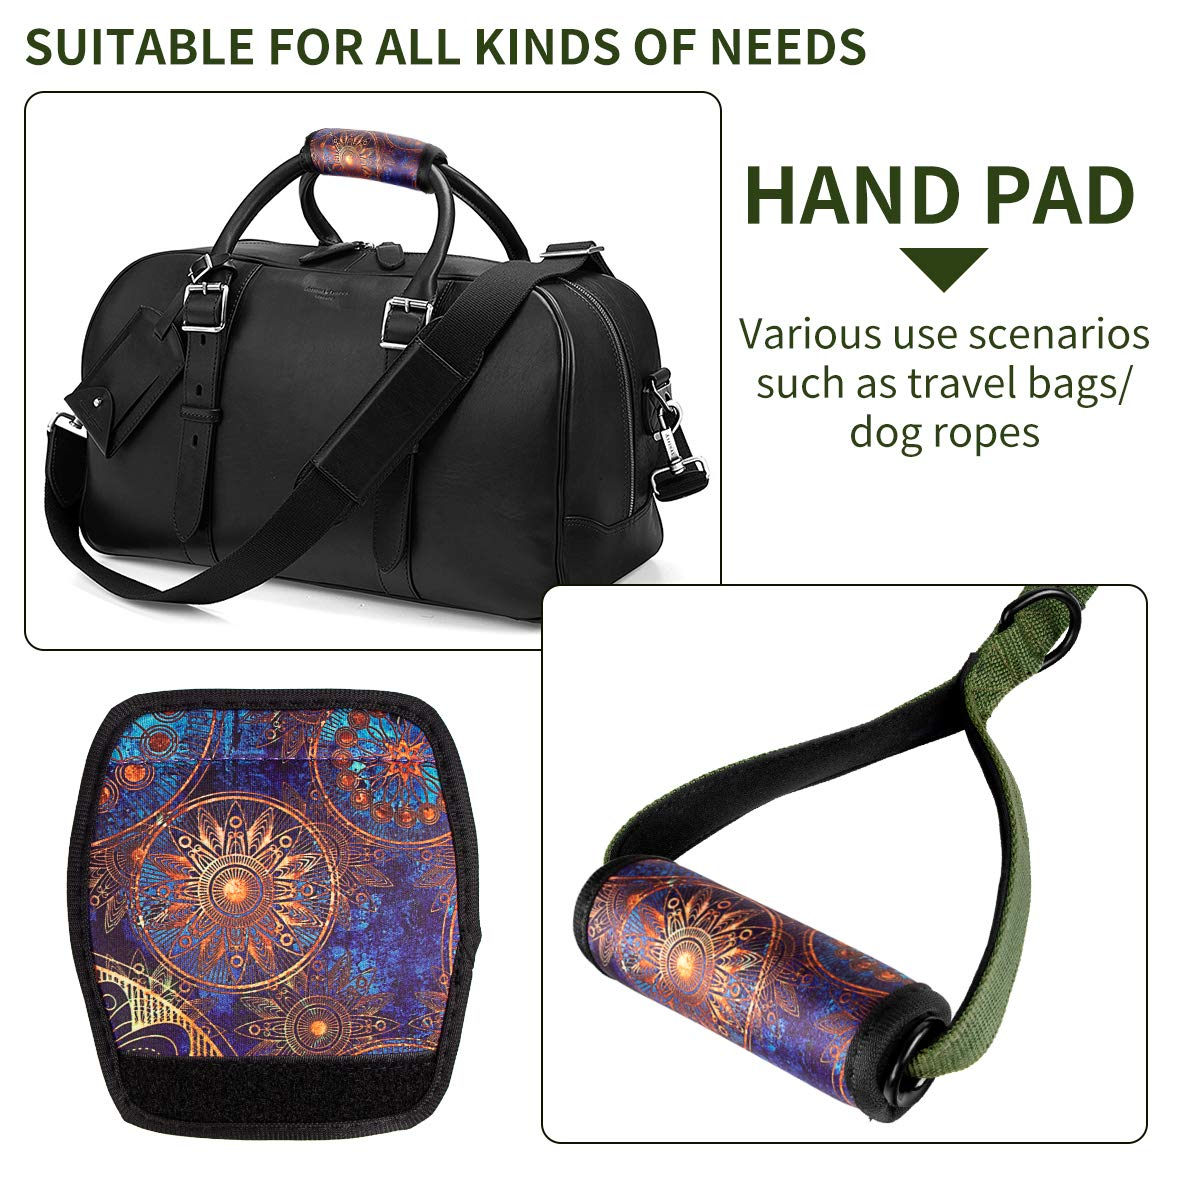 3 Pcs a Set Comfort Neoprene Handle Wraps//Grip//Identifier for Travel Bag Luggage Suitcase Baby Carriage